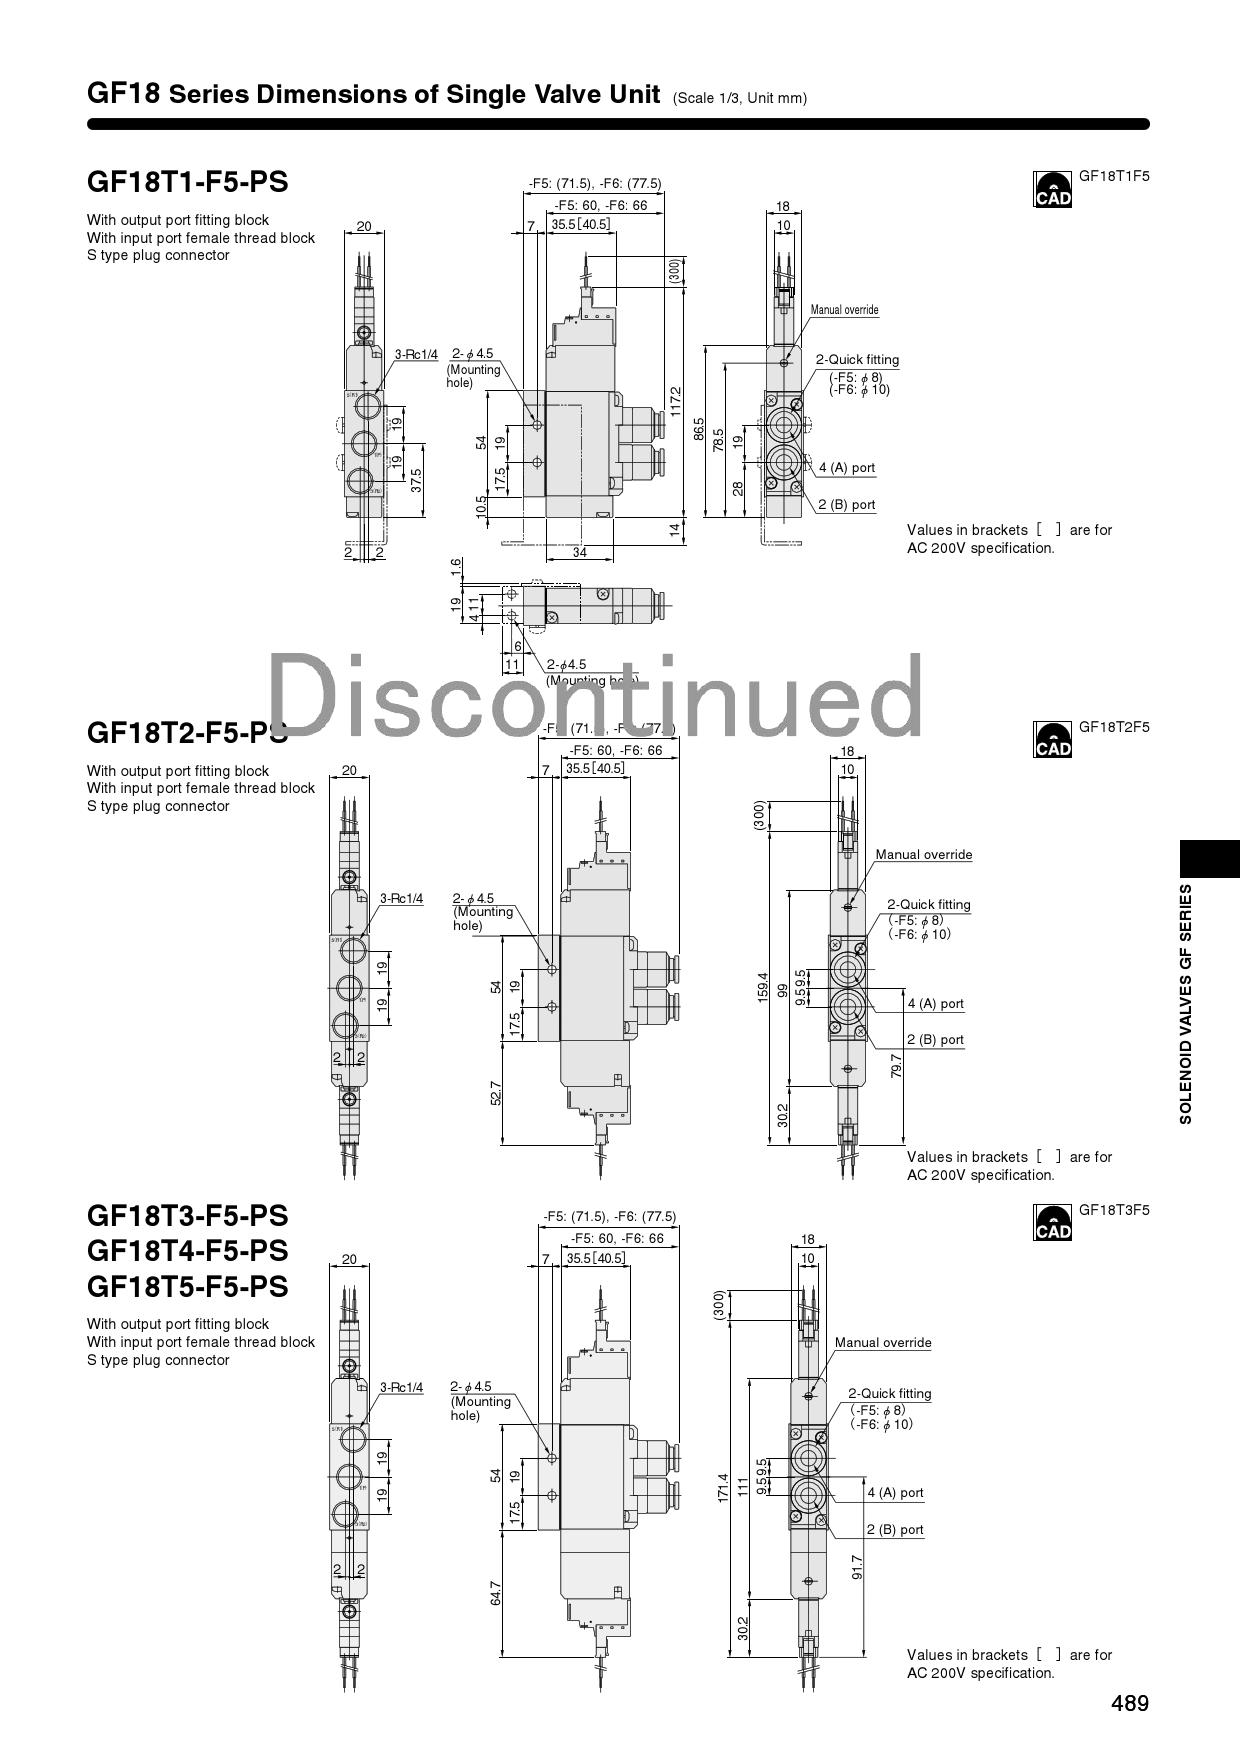 Vornado Fan Wiring Diagram in addition 3 Sd 4 Wire Switch Wiring Diagram in addition Wiring Diagram For Single Phase 2 Sd Motor furthermore 12 Volt Fan Switch Wiring Diagram further Stinger Bug Zapper Wiring Diagram. on ceiling fan controller wiring diagram